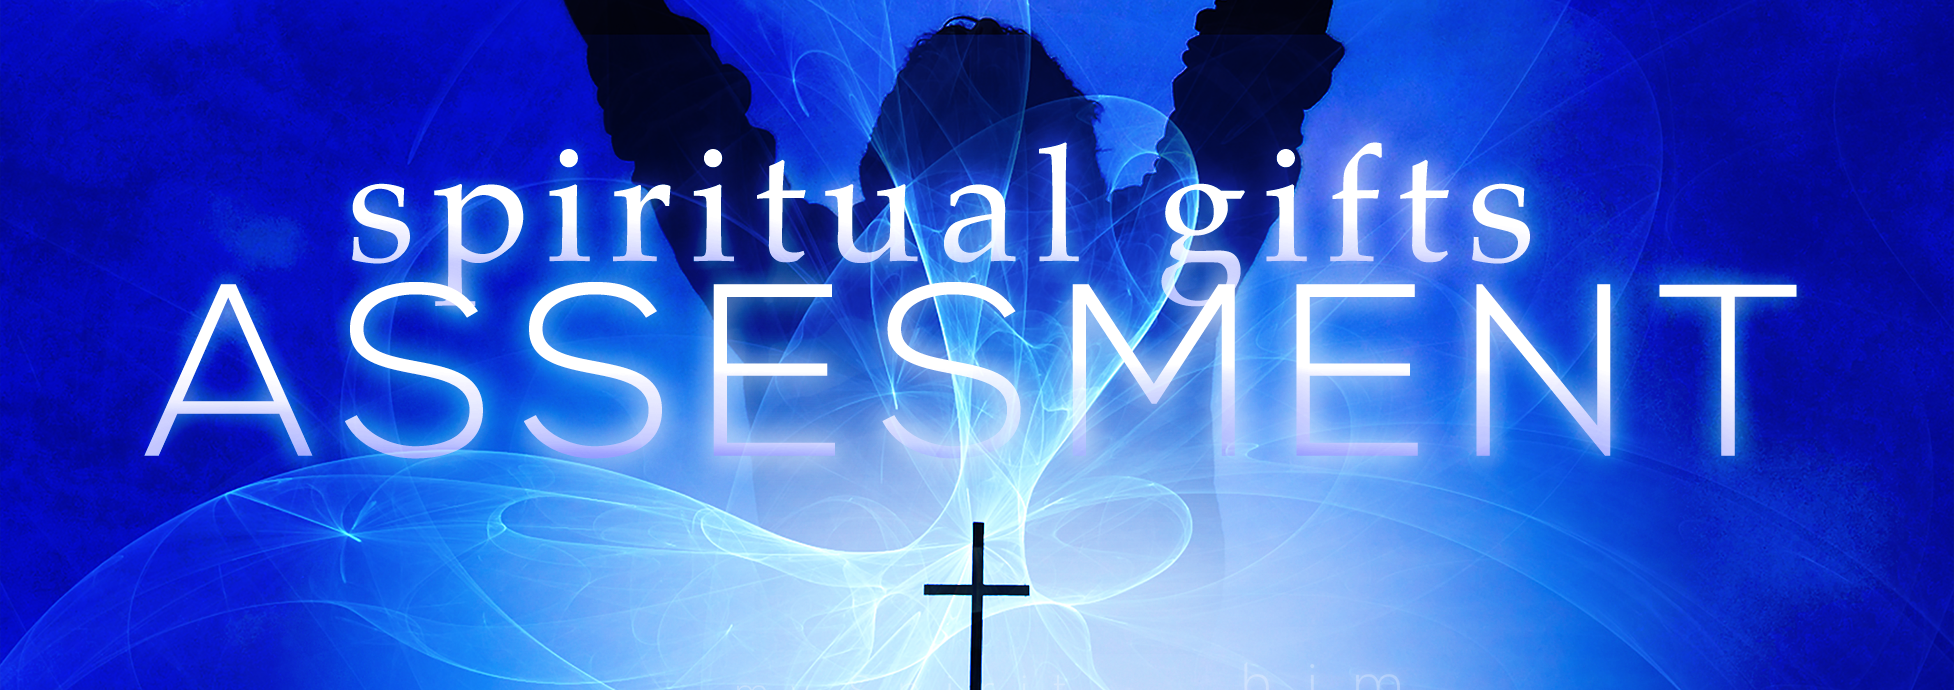 Spiritual Gifts Assessment banner